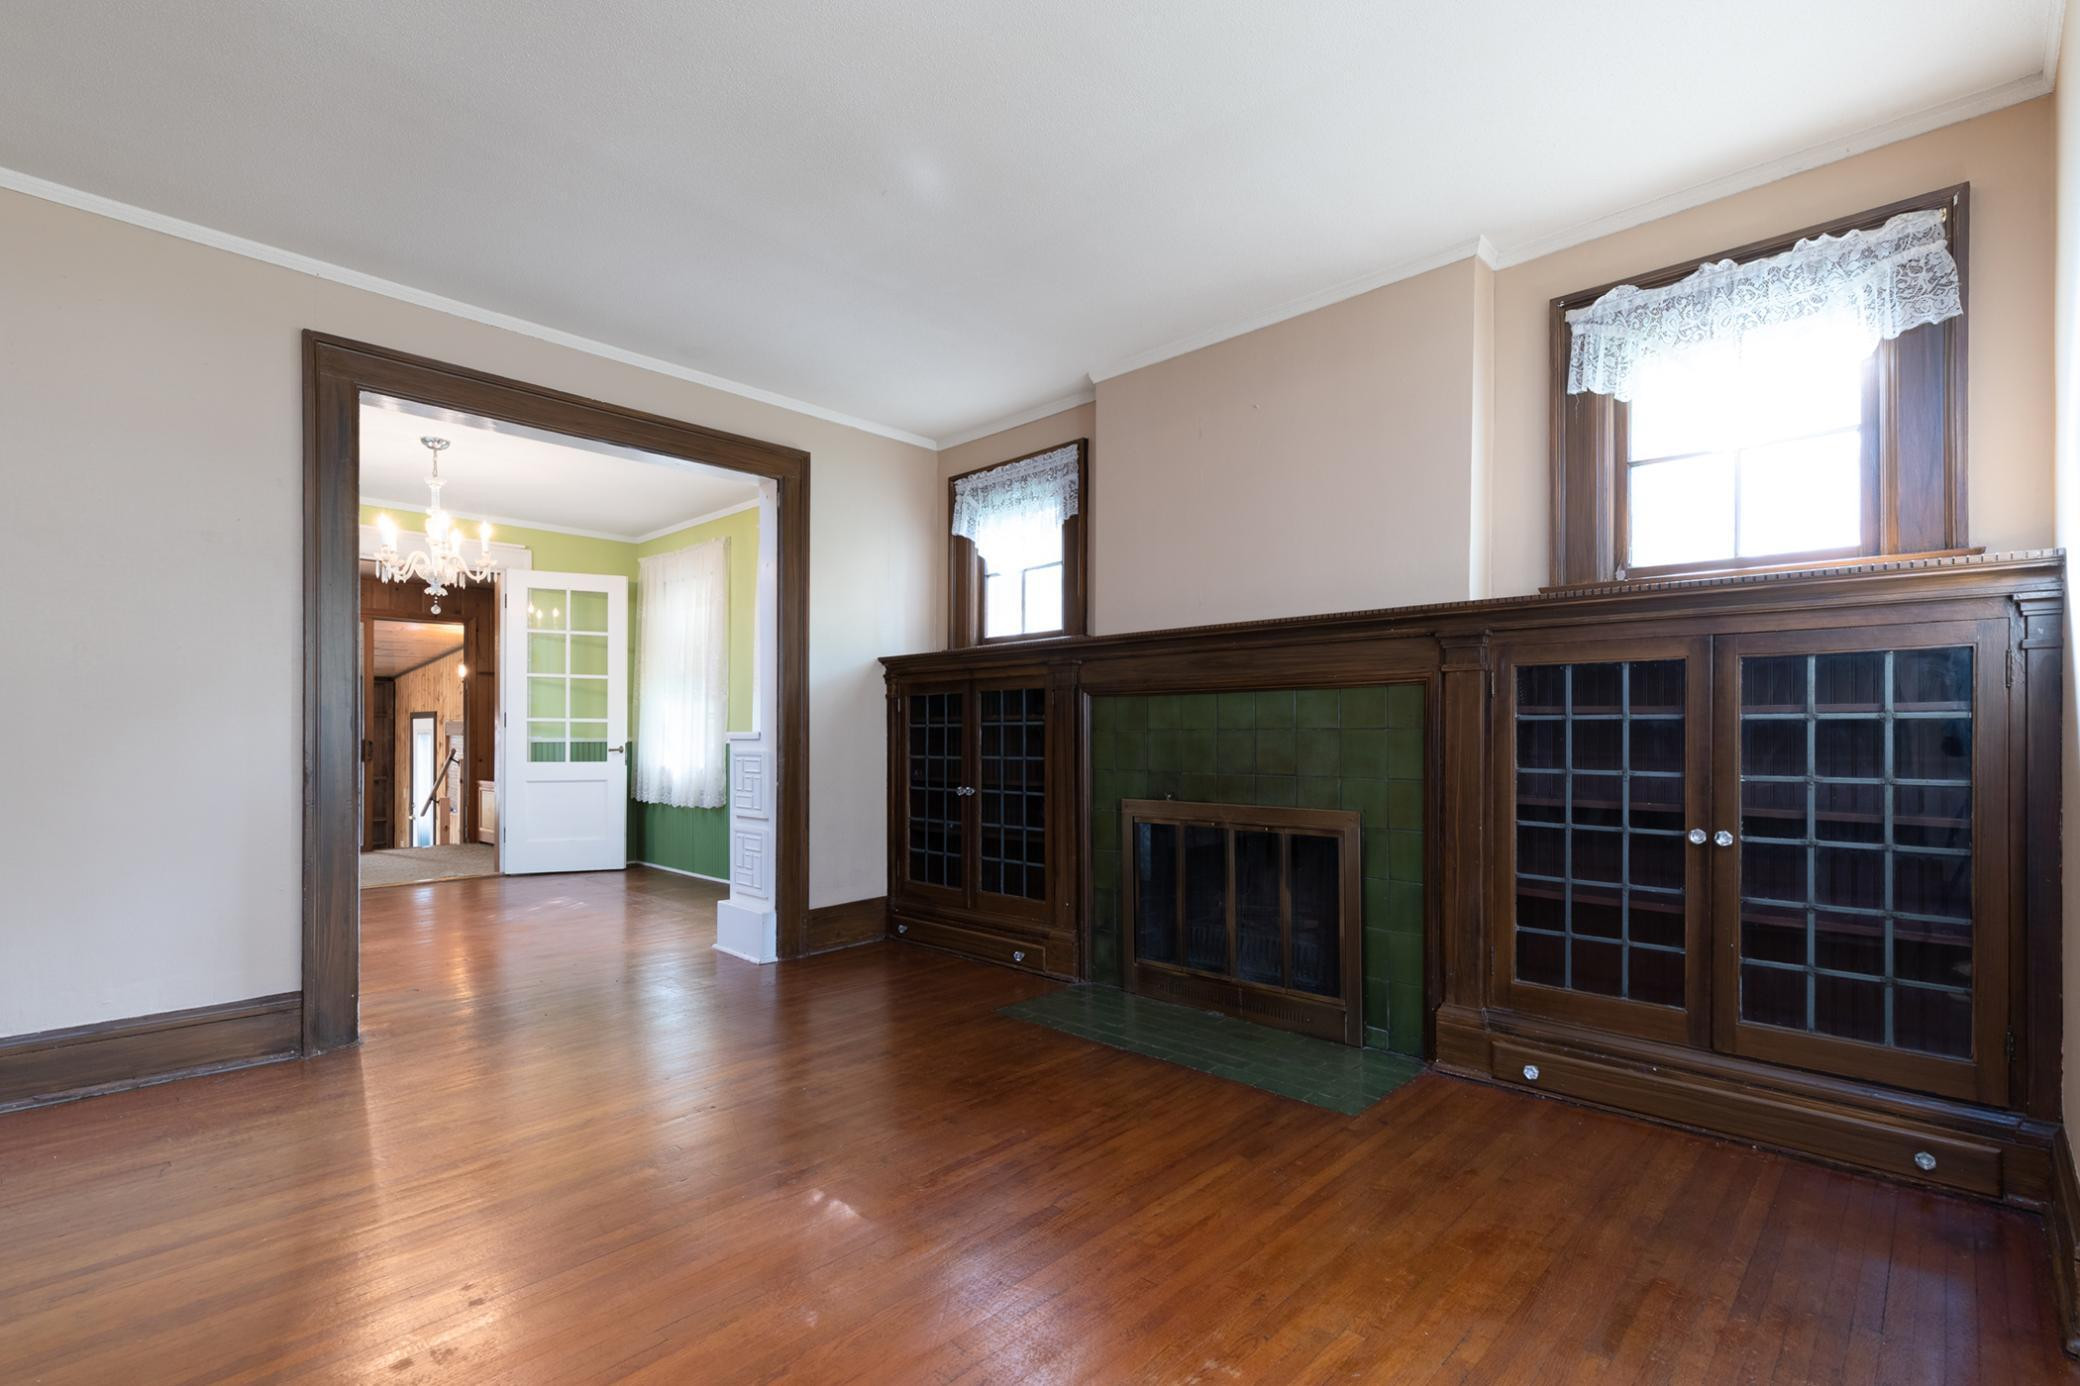 Living Room (Fireplace has not been used for years)